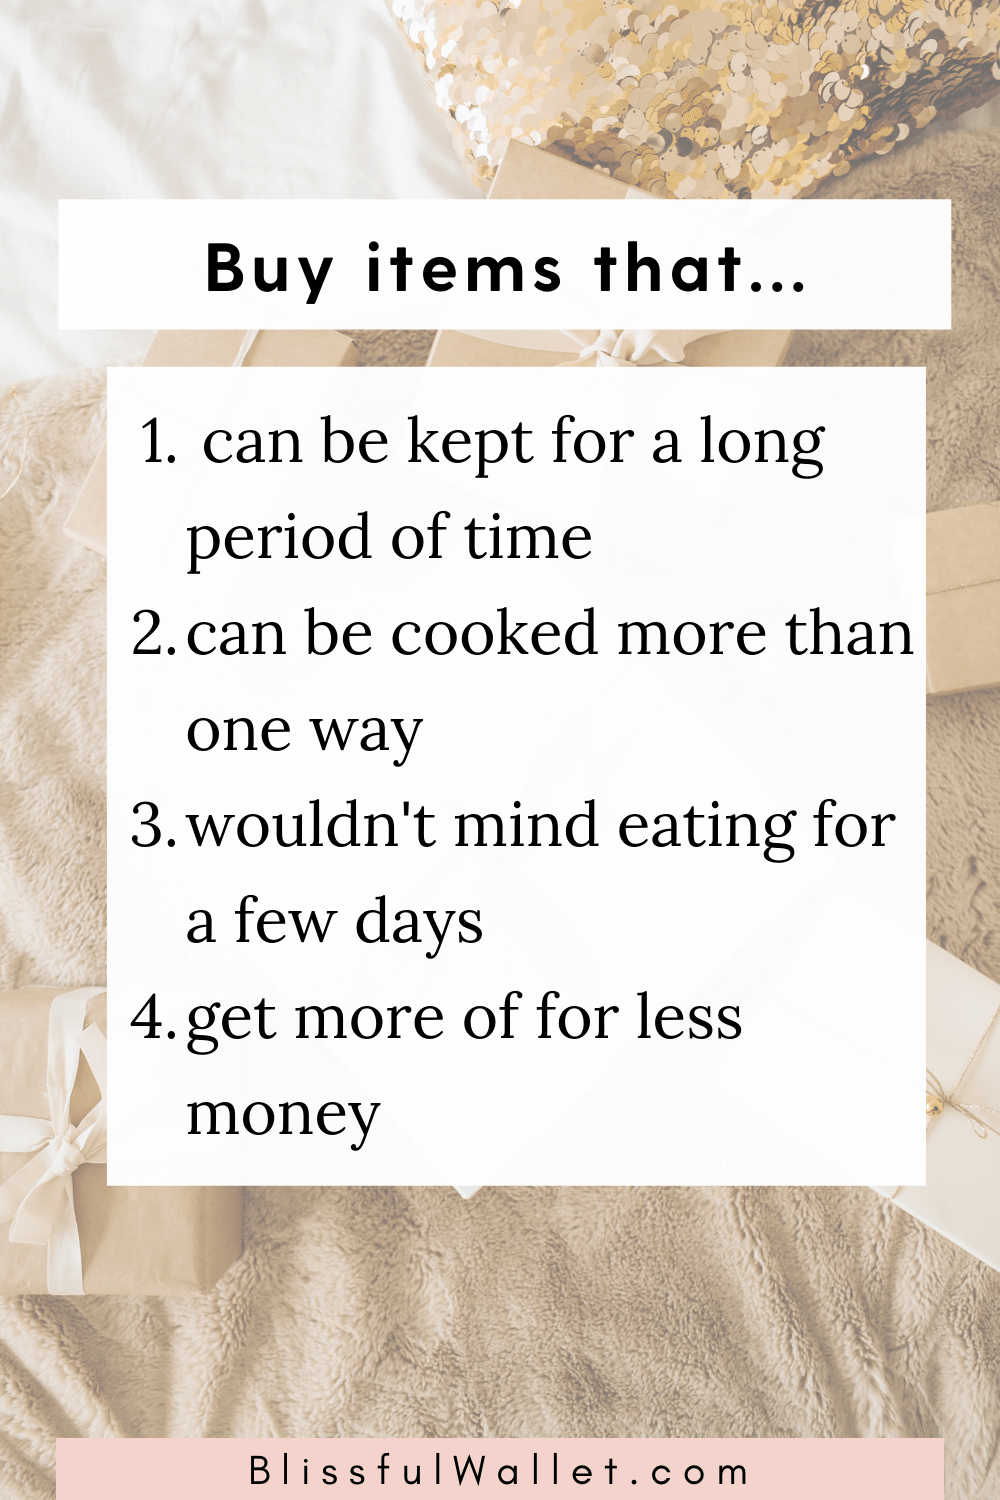 1. Buy items that can be kept for a long period of time 2. Buy items that can be cooked in multiple ways for cheap. 3. Buy ingredients that you wouldn't mind eating for several  days 4. Buy food ingredients that make more meals or feed several people for less money